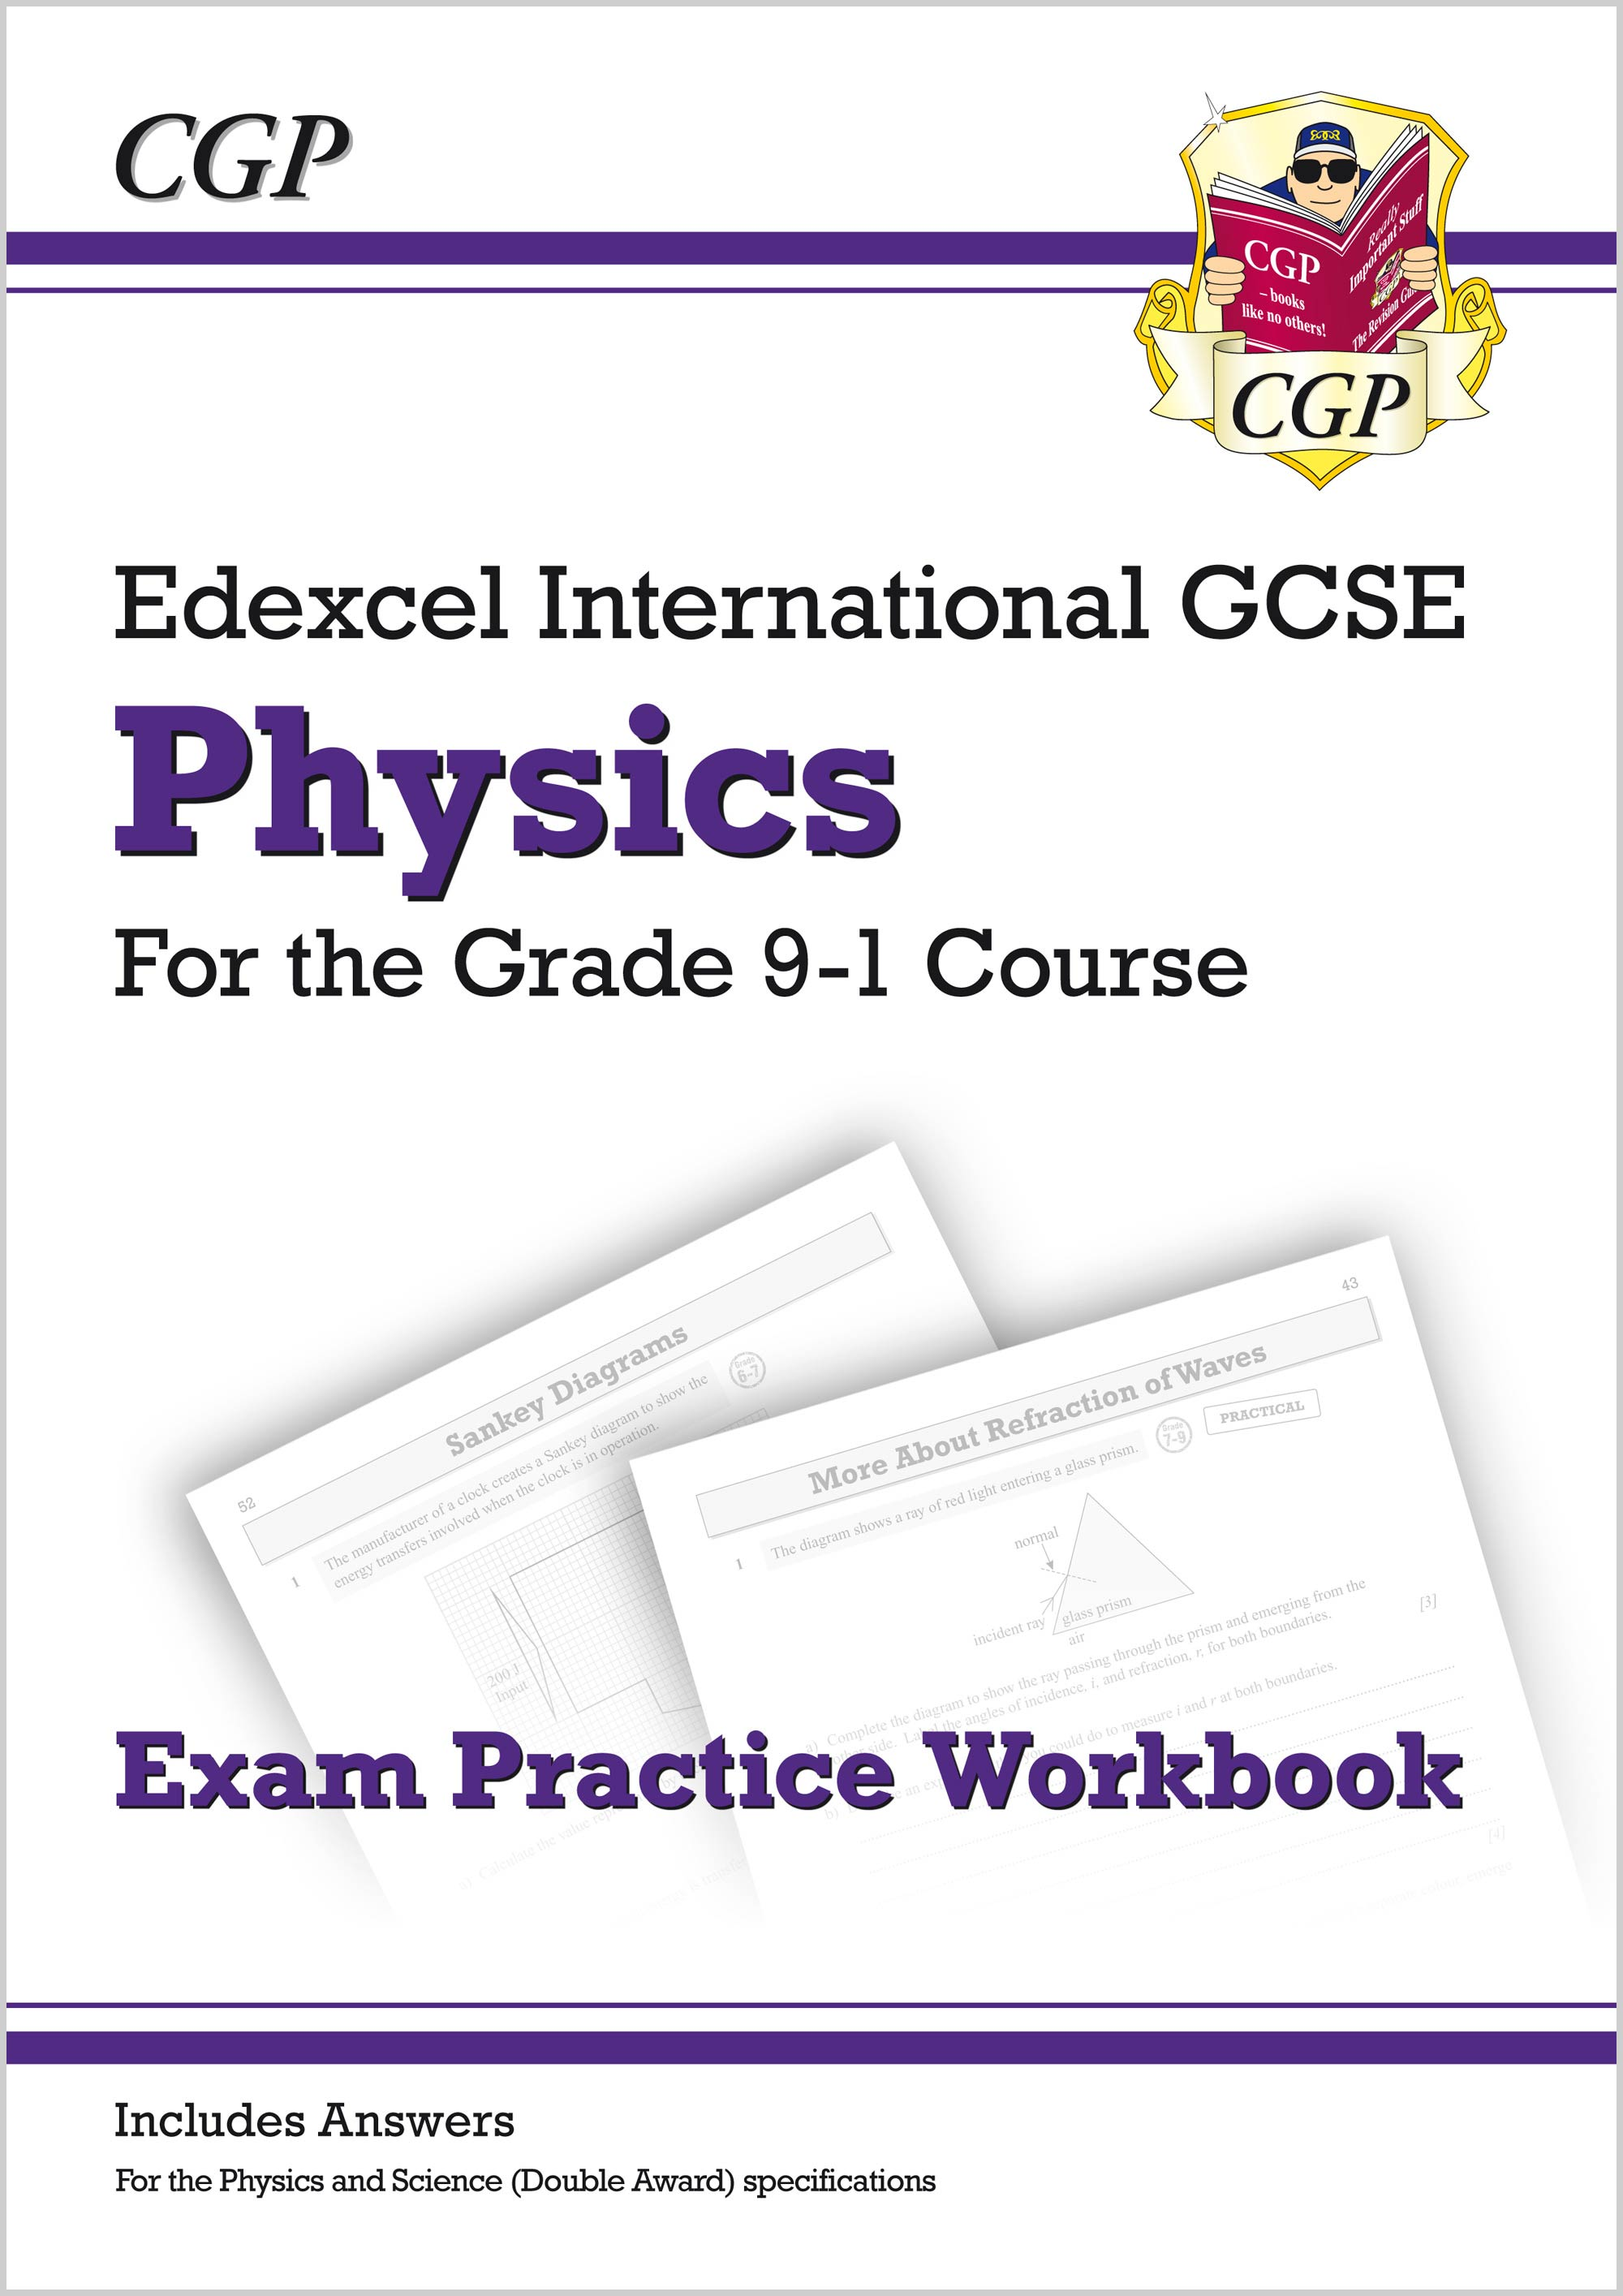 PEQI42 - New Grade 9-1 Edexcel International GCSE Physics: Exam Practice Workbook (includes Answers)